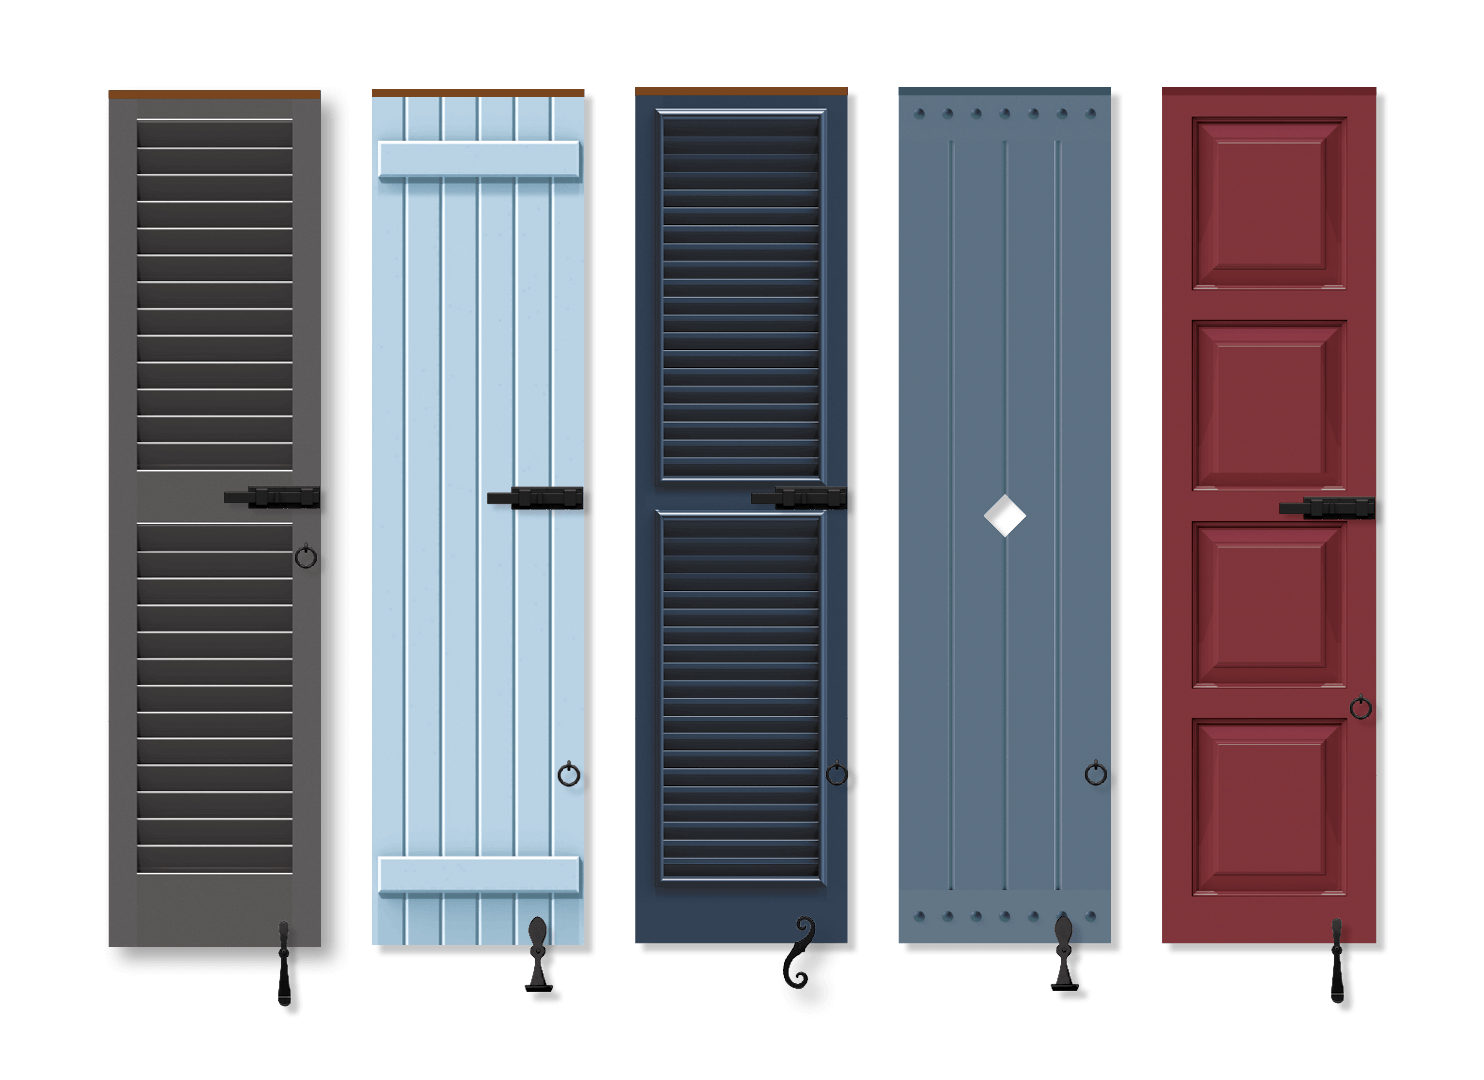 Timberlane Shutters in a row